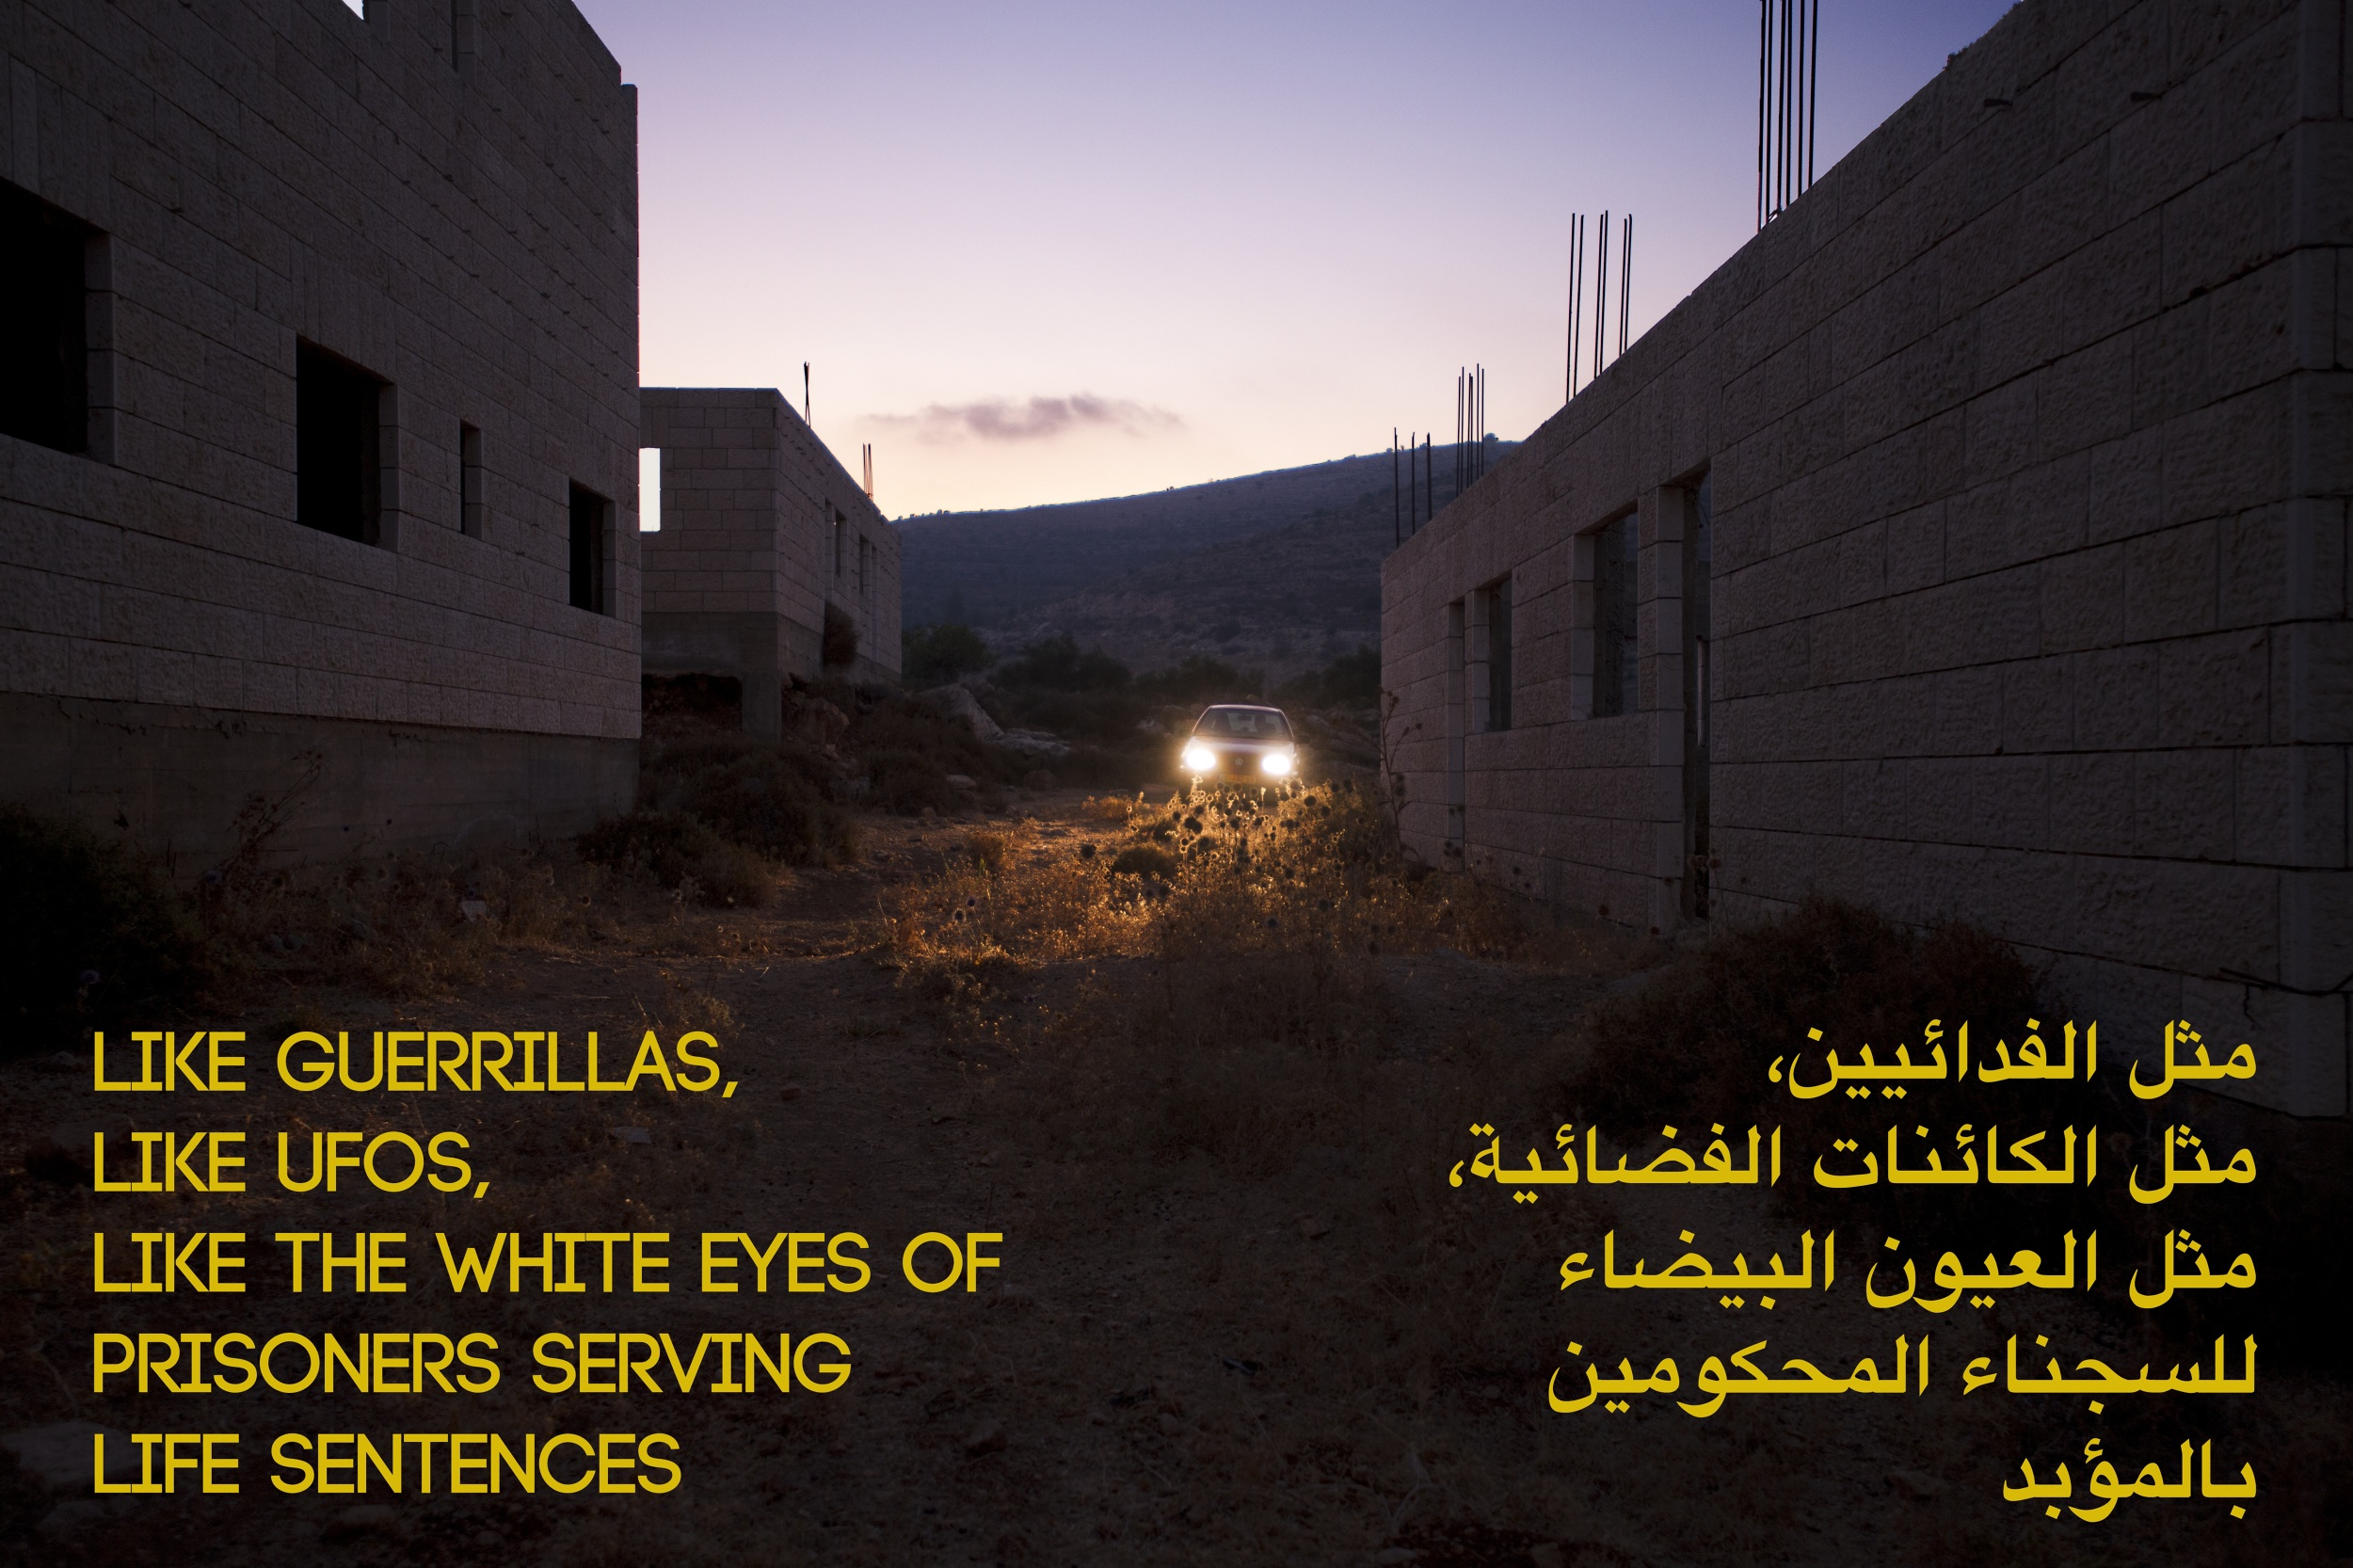 Basel Abbas and Ruanne Abou Rahme, The Incidental Insurgents (film still), 2012-2015